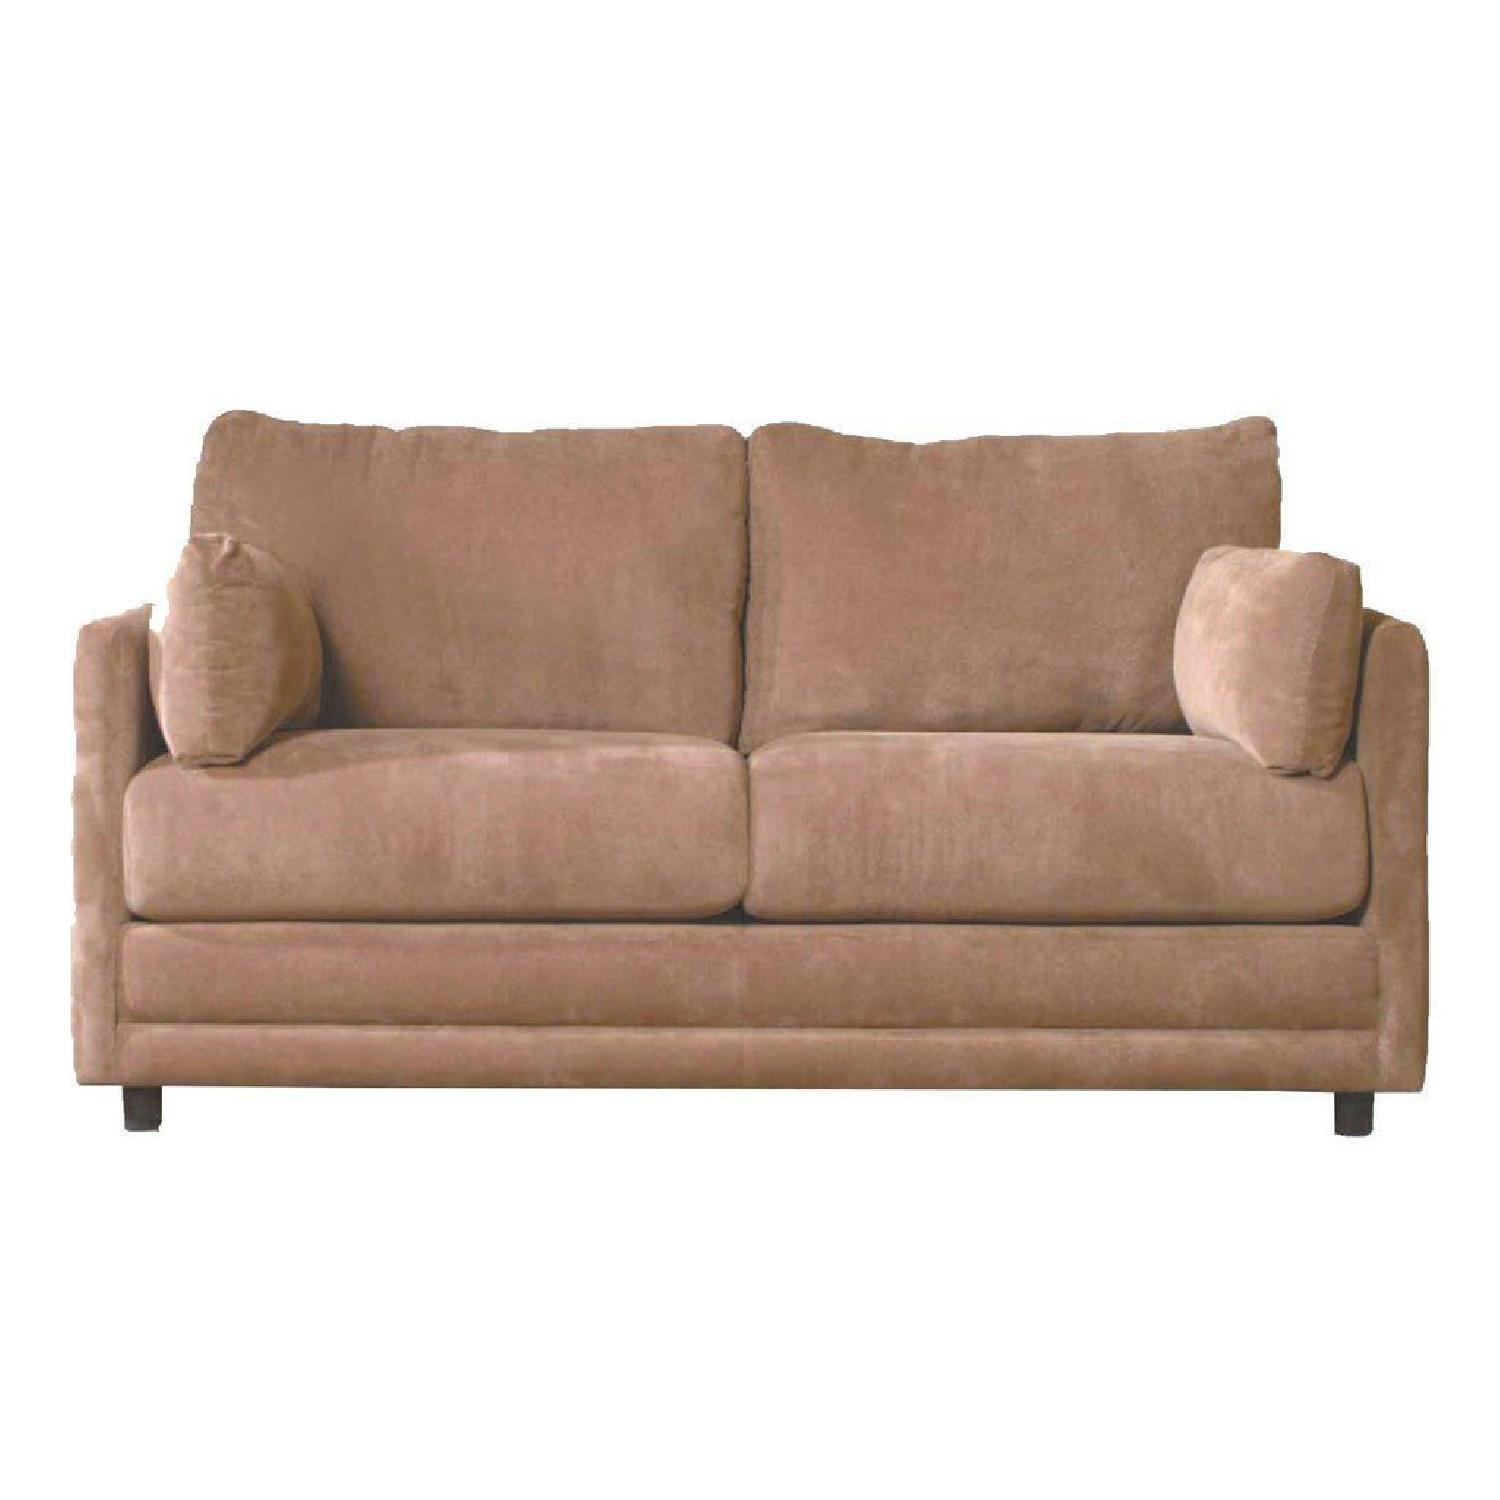 Jennifer Convertibles Beige Sleeper Sofa - image-0